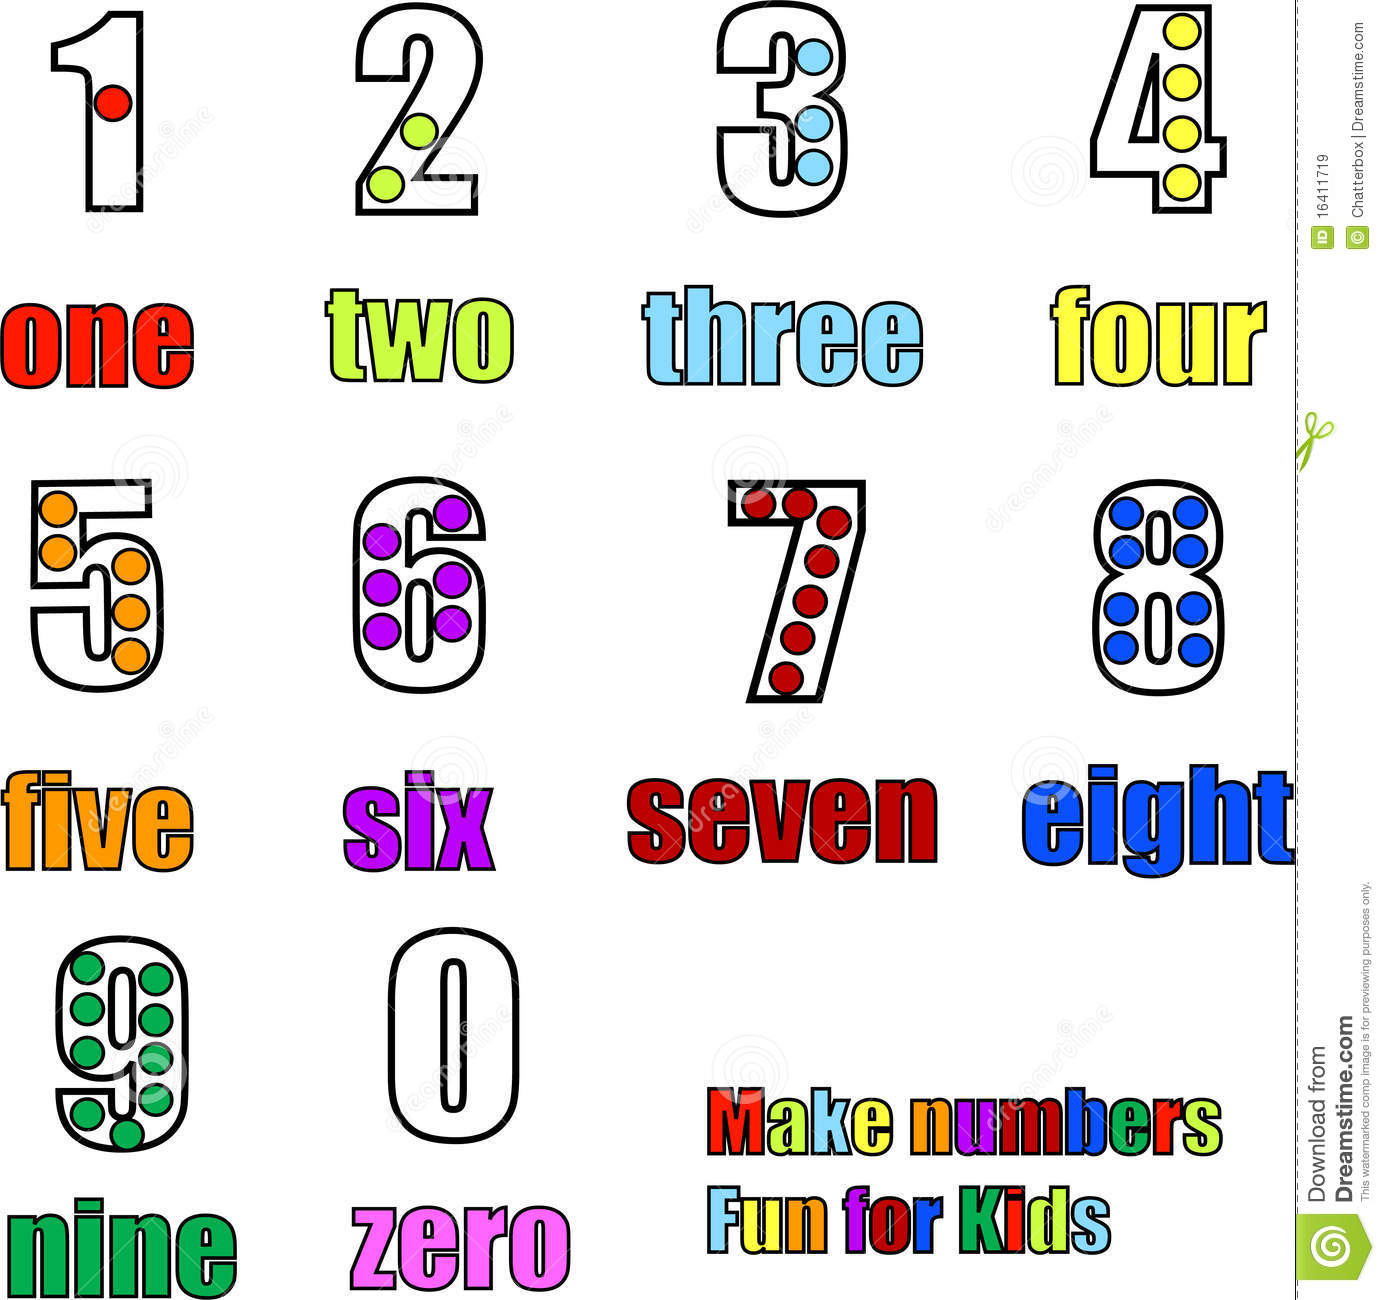 Royalty Free Stock Images Counting Numbers 0 To 9 One To Nine Image16411719 on Airplane Worksheets